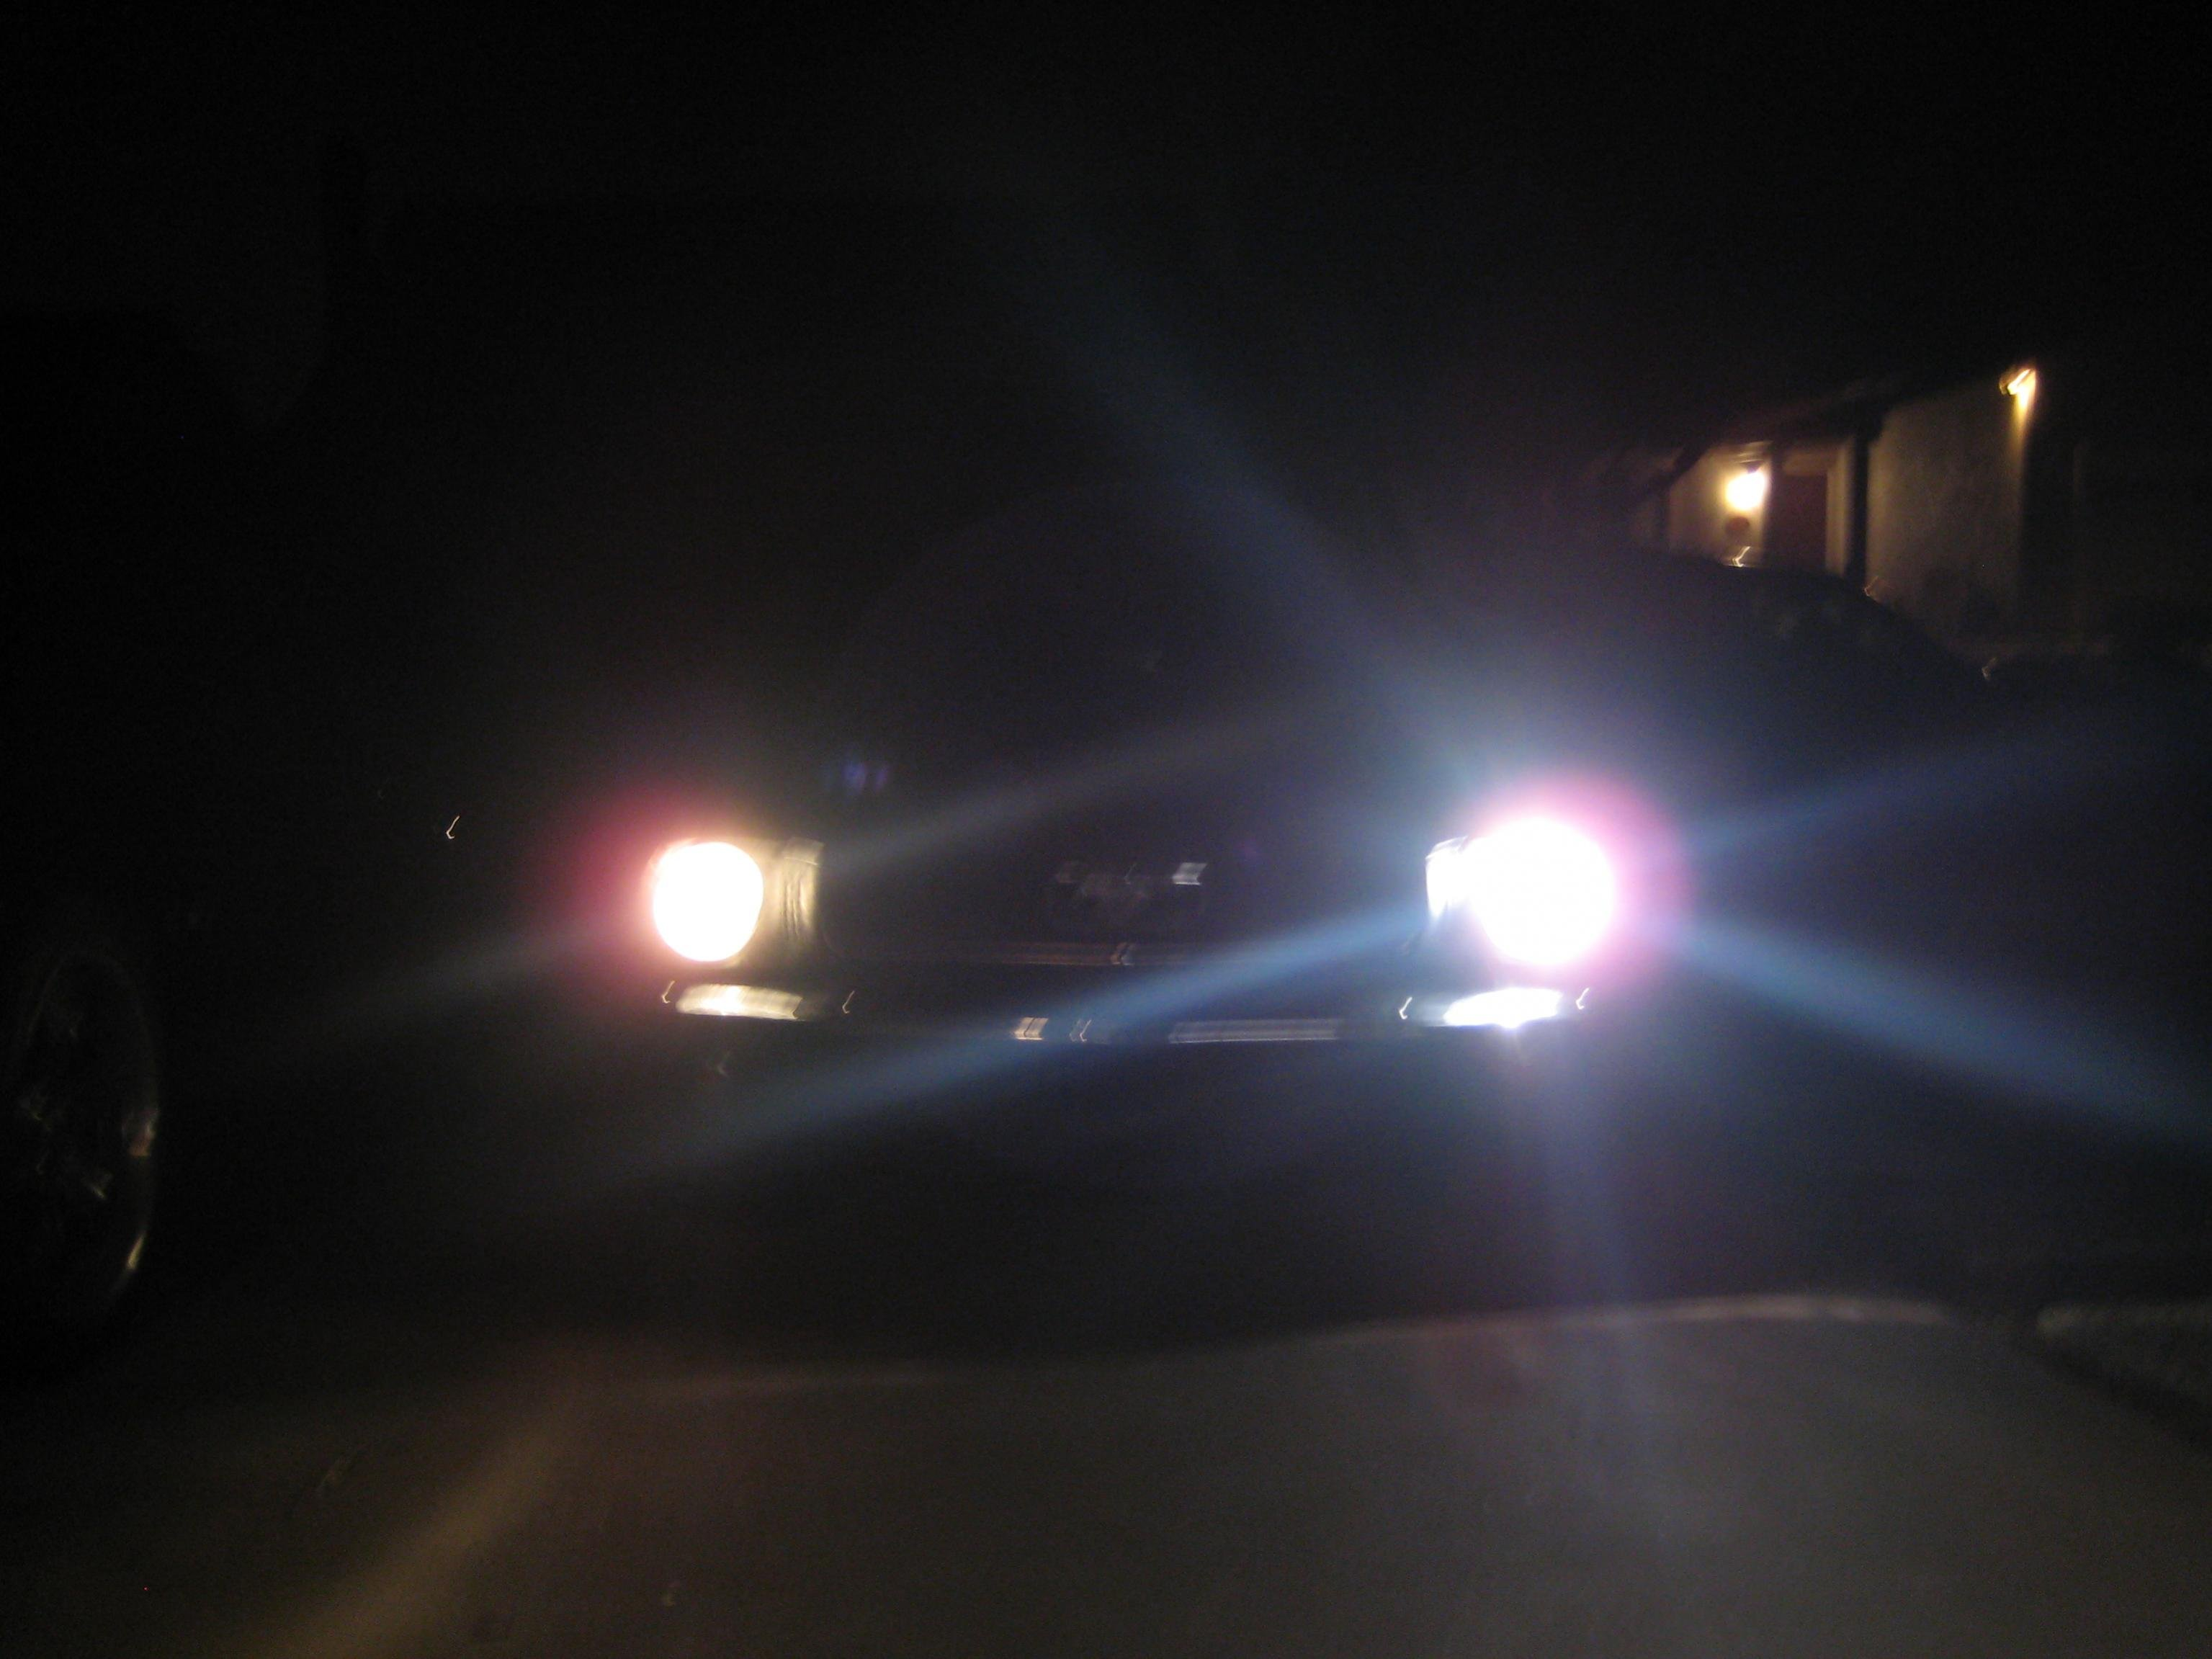 hid headlights in a 1969 Mustang coupe-hid-headlights.jpg